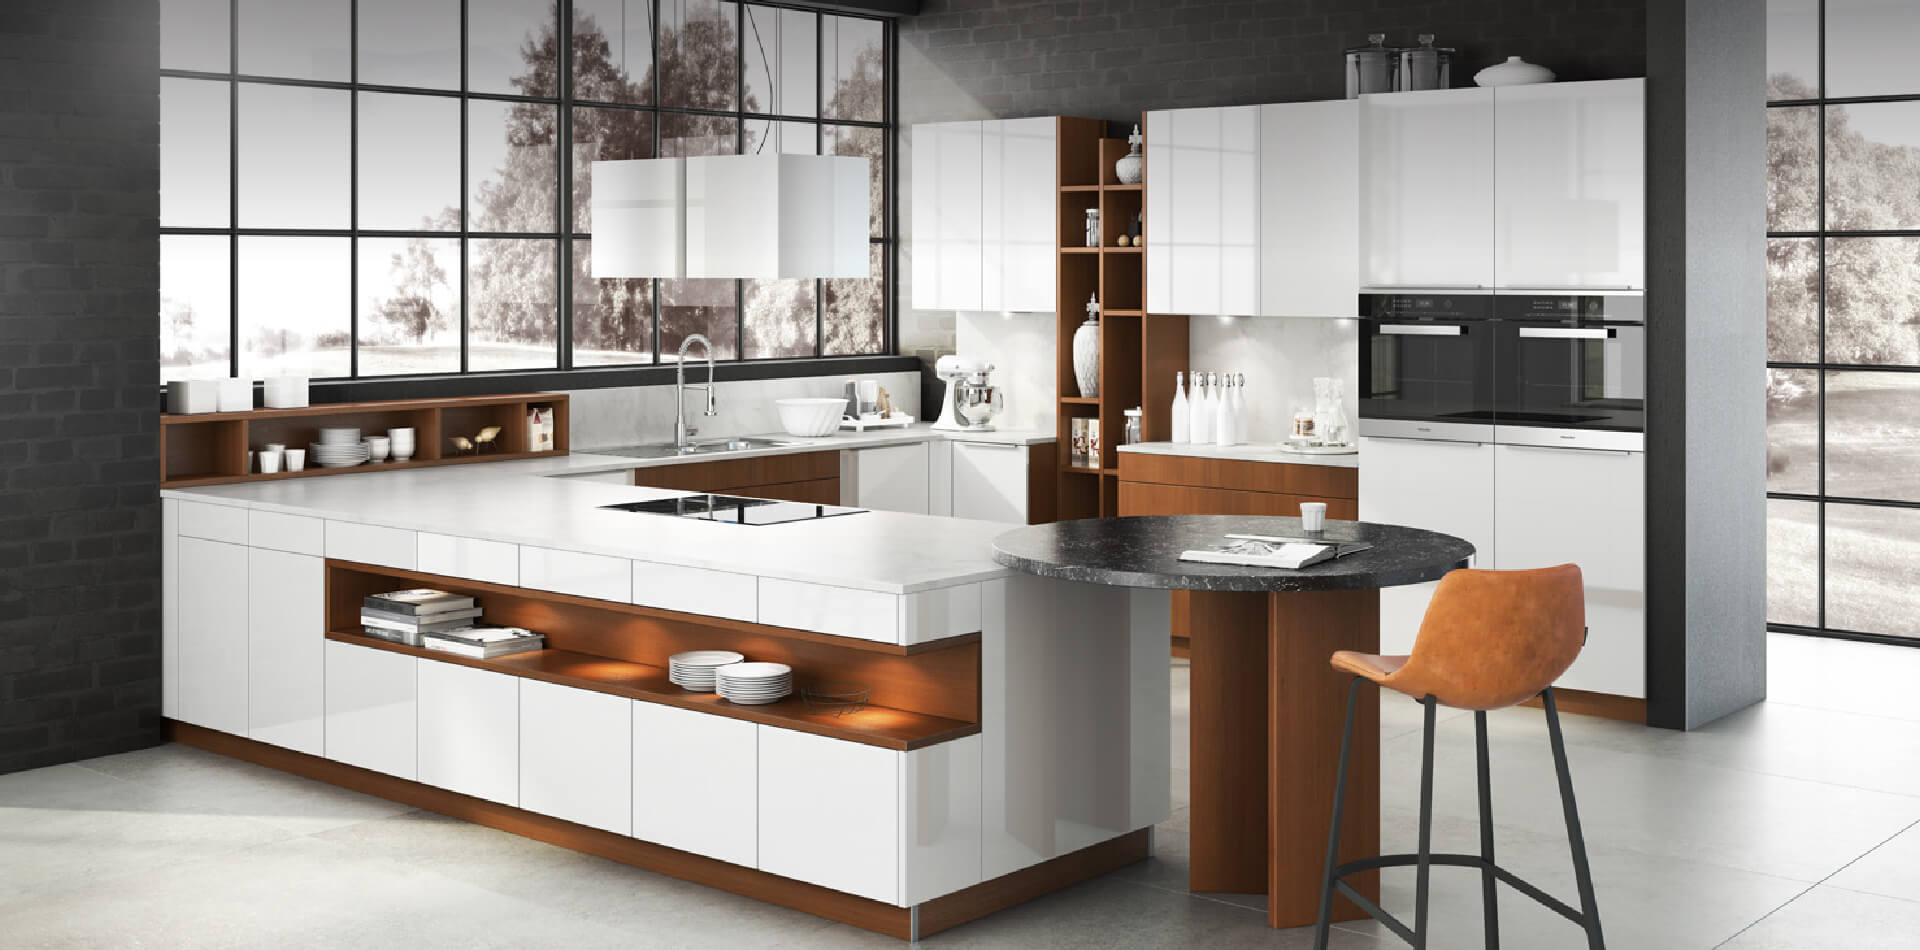 White and brown kitchen interior in a winter area